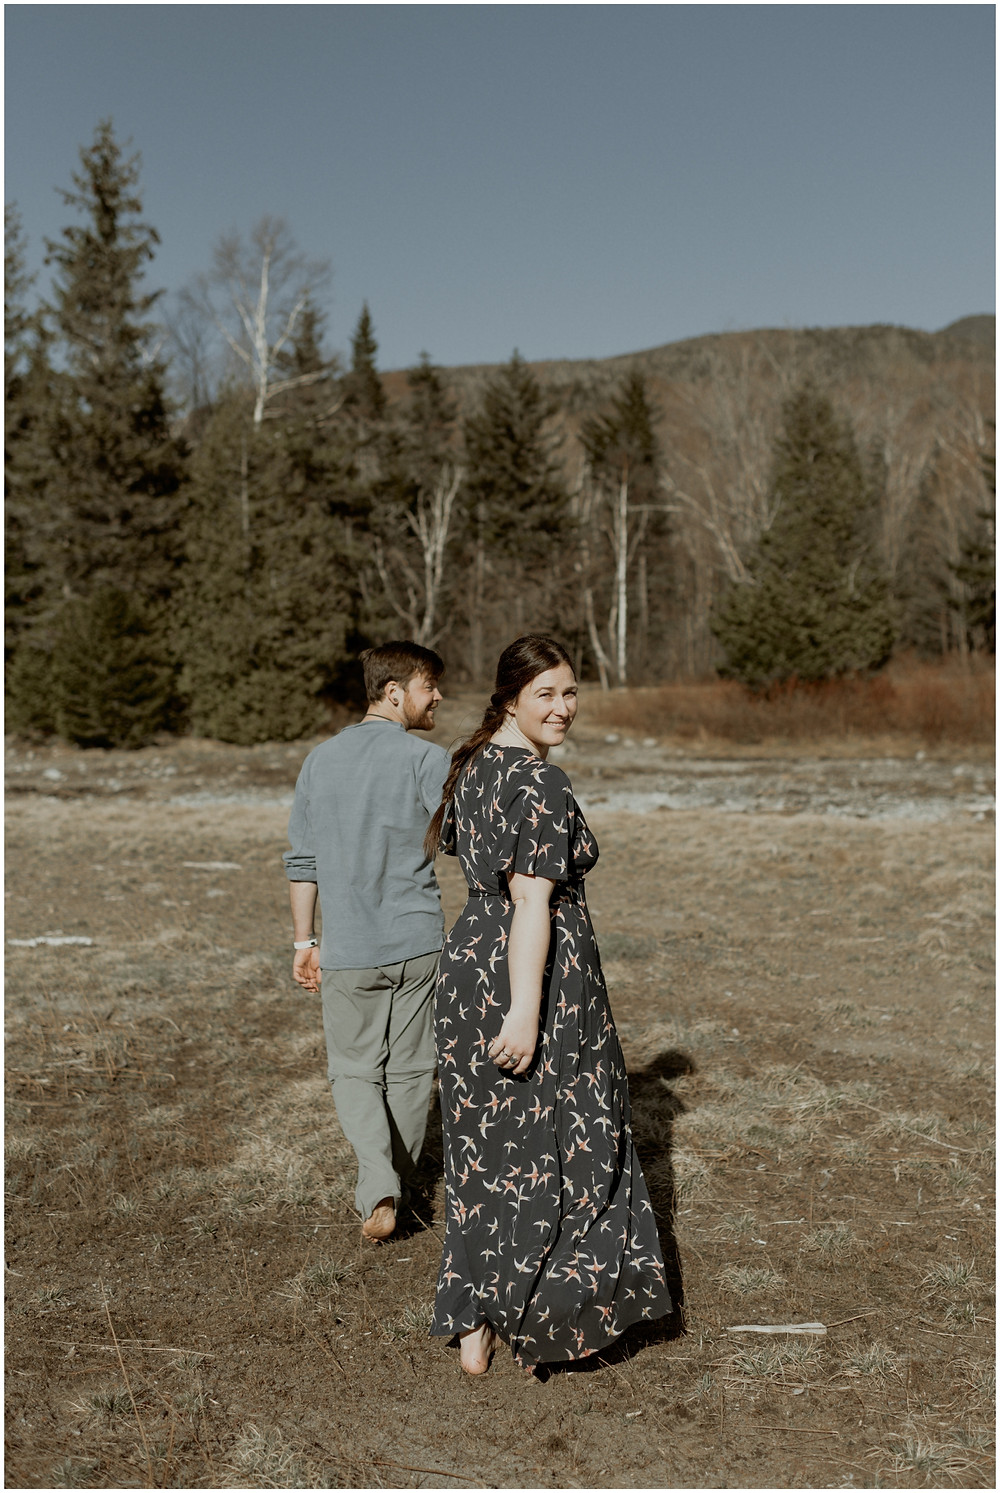 Boho engagement session in the mountains by Mountainaire Gatherings